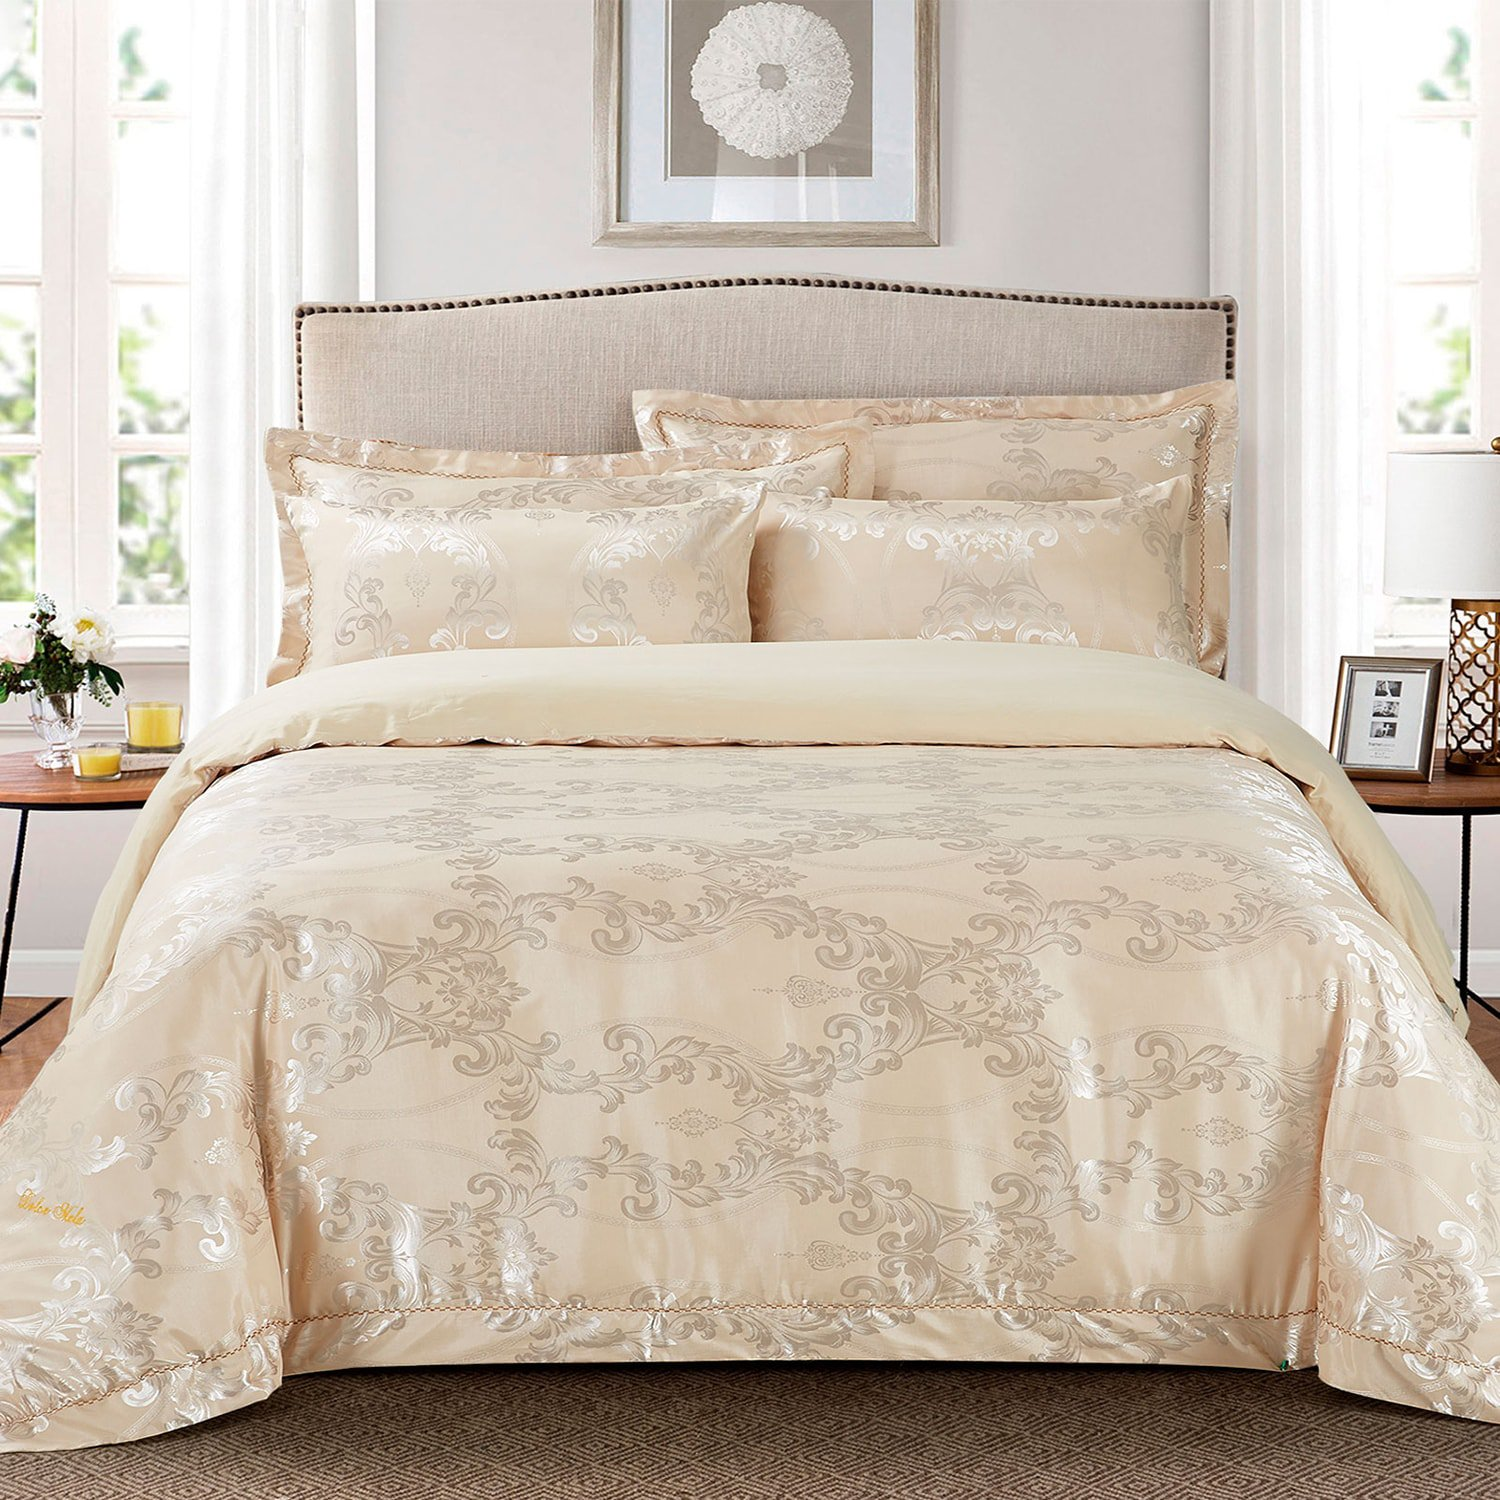 Fullsize Of King Size Duvet